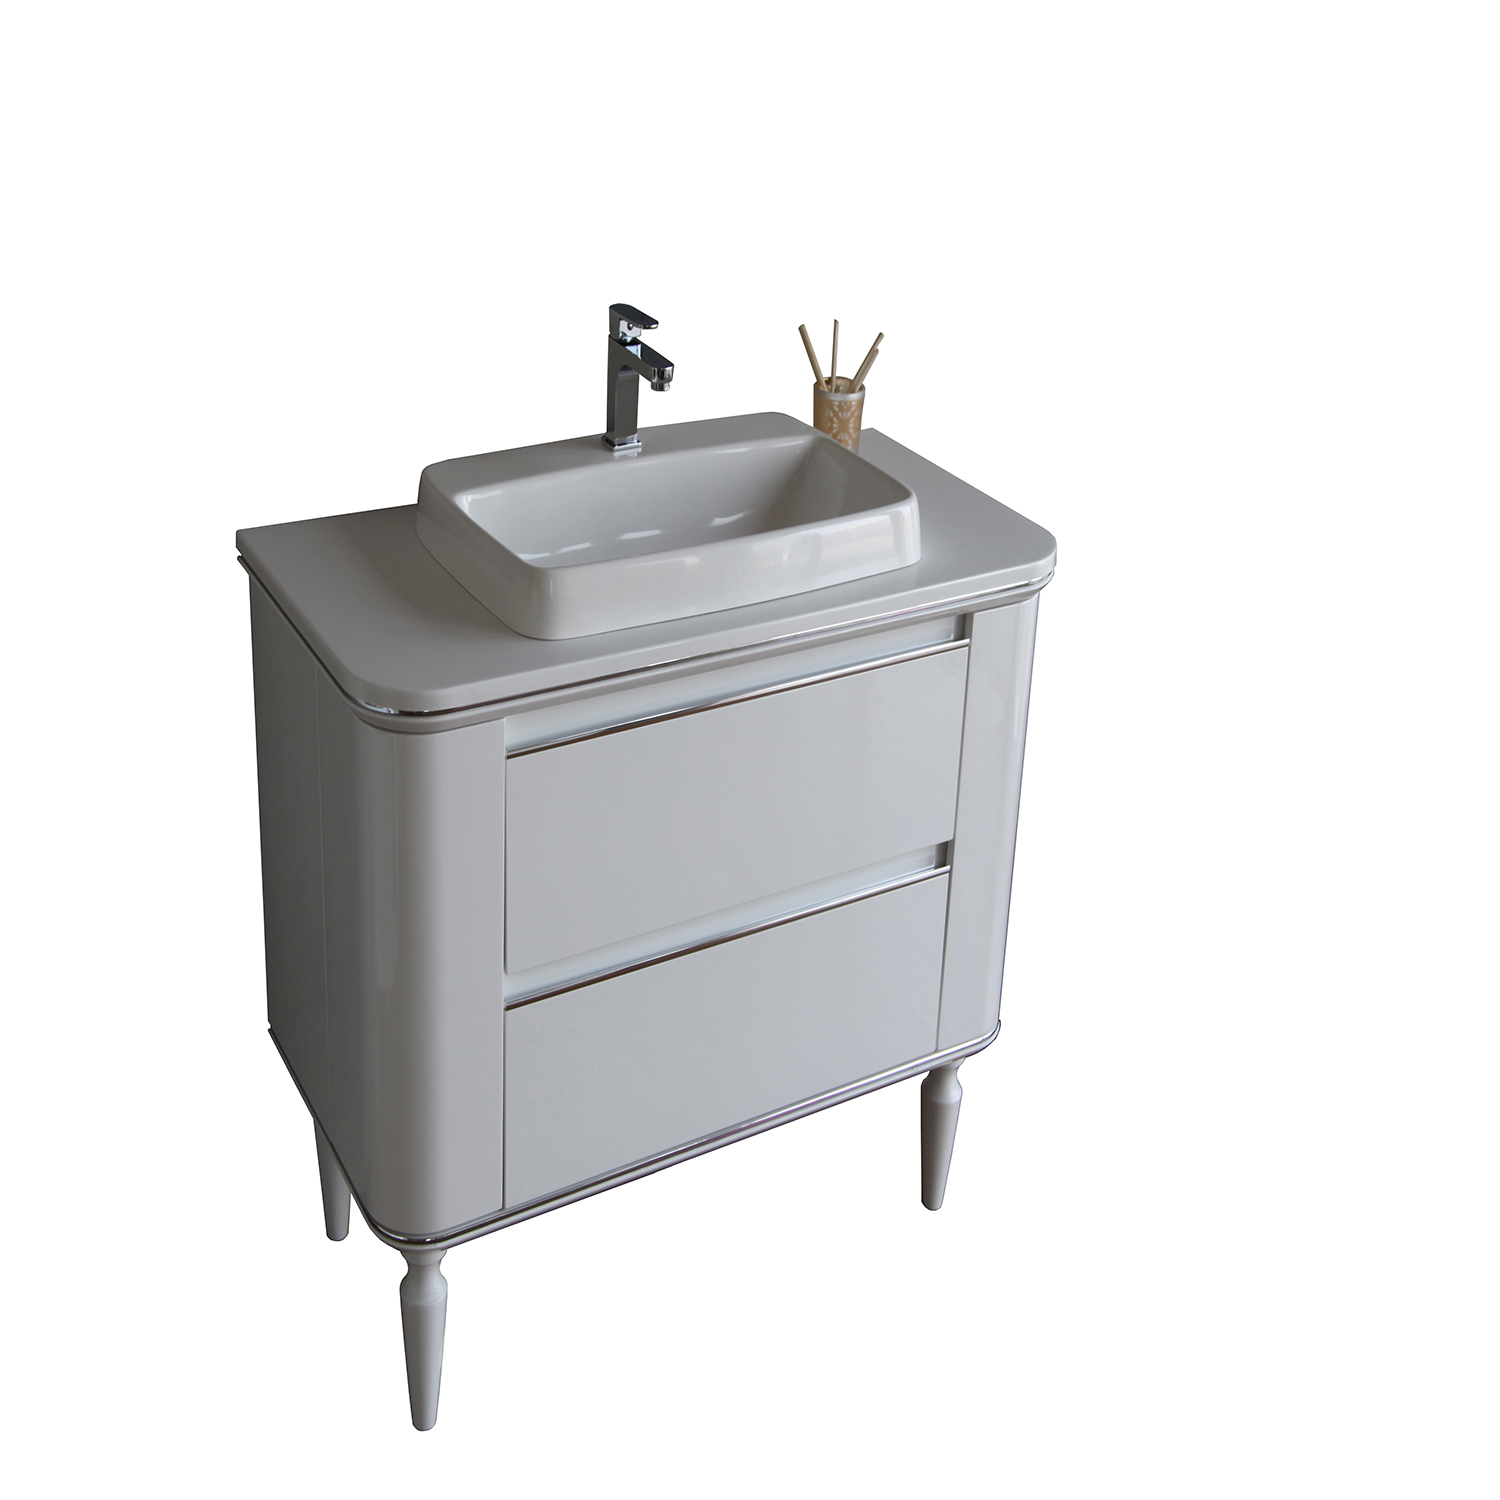 EVVN87 40WH A Main - Eviva Duva 40 in. Bathroom Vanity in White with Whtie Acrylic Countertop